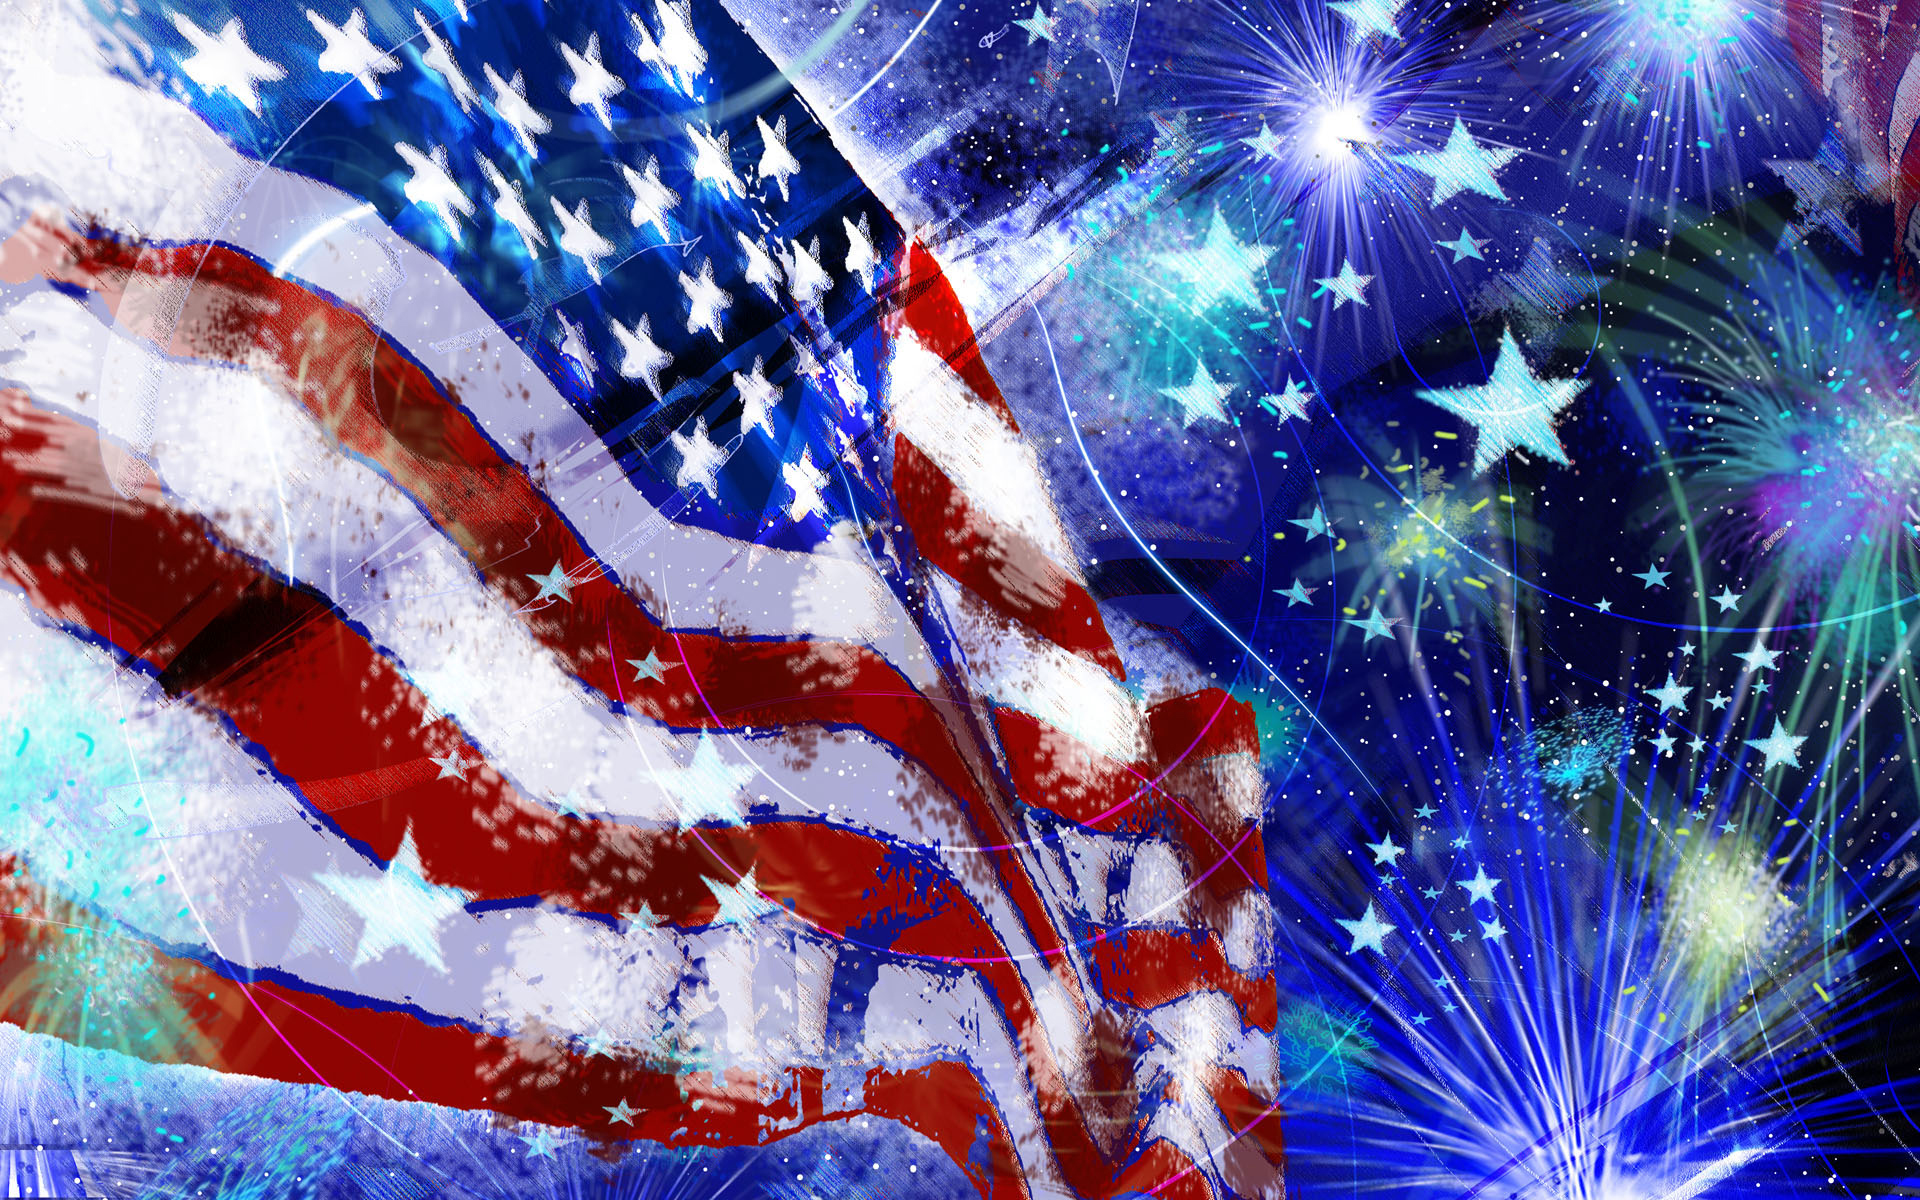 Free Happy 4th of July Images For Facebook and Twitter